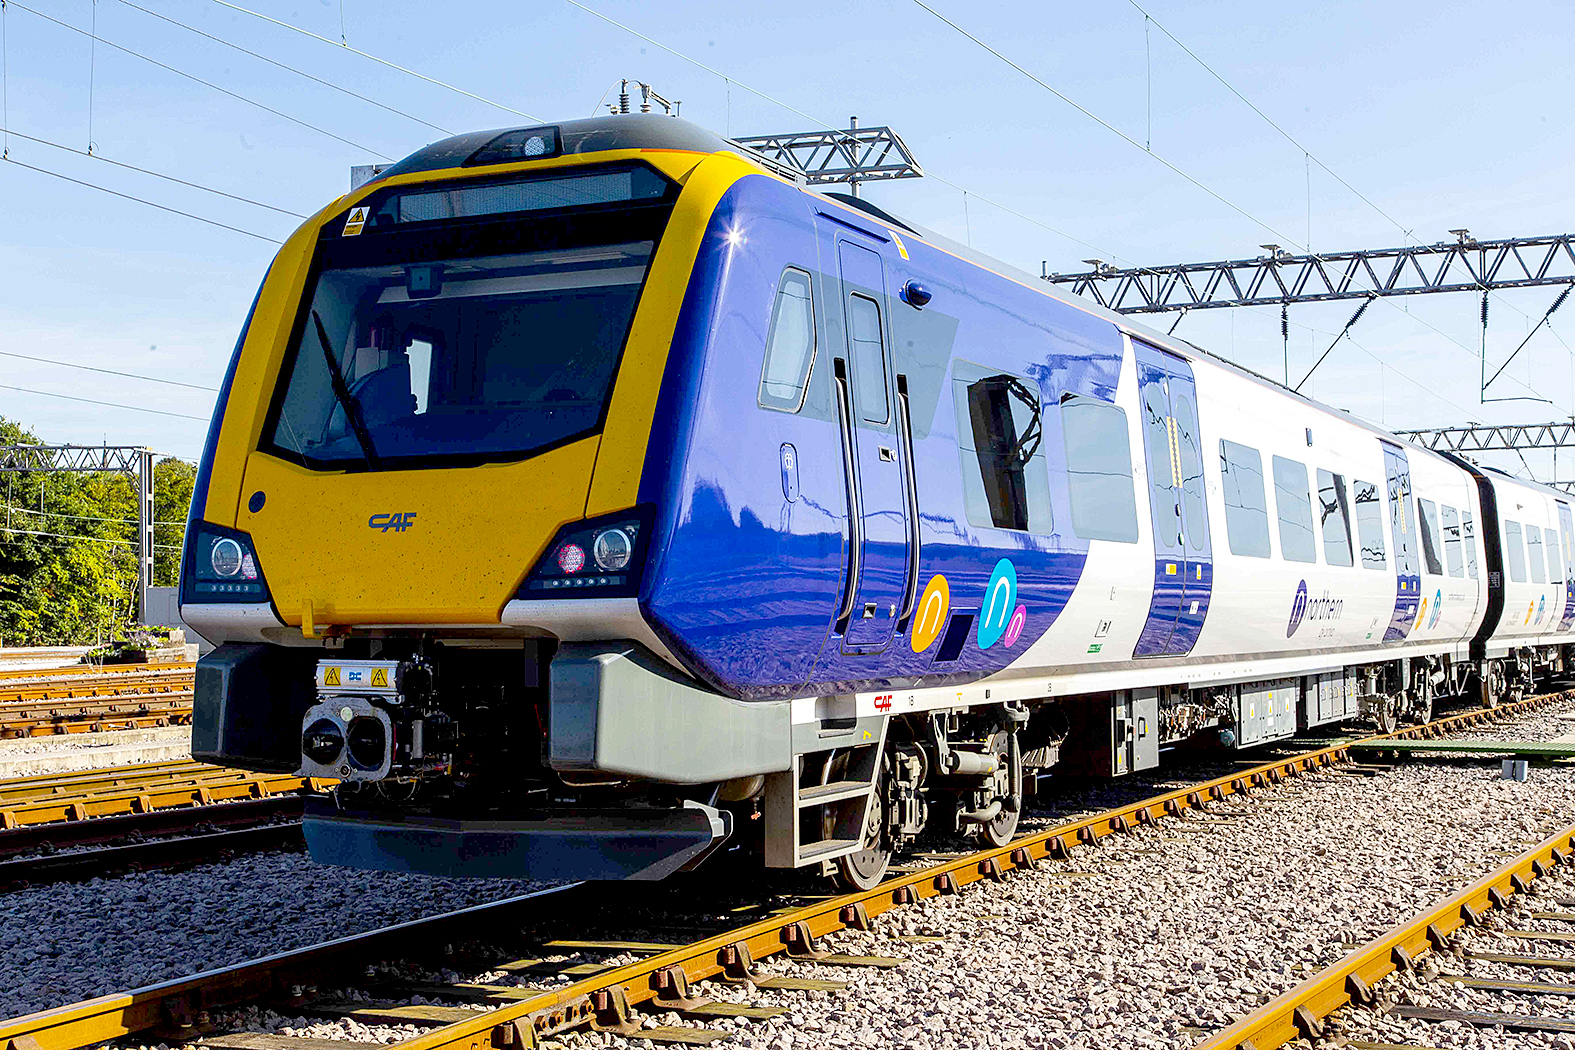 Government to put Northern rail services into public ownership